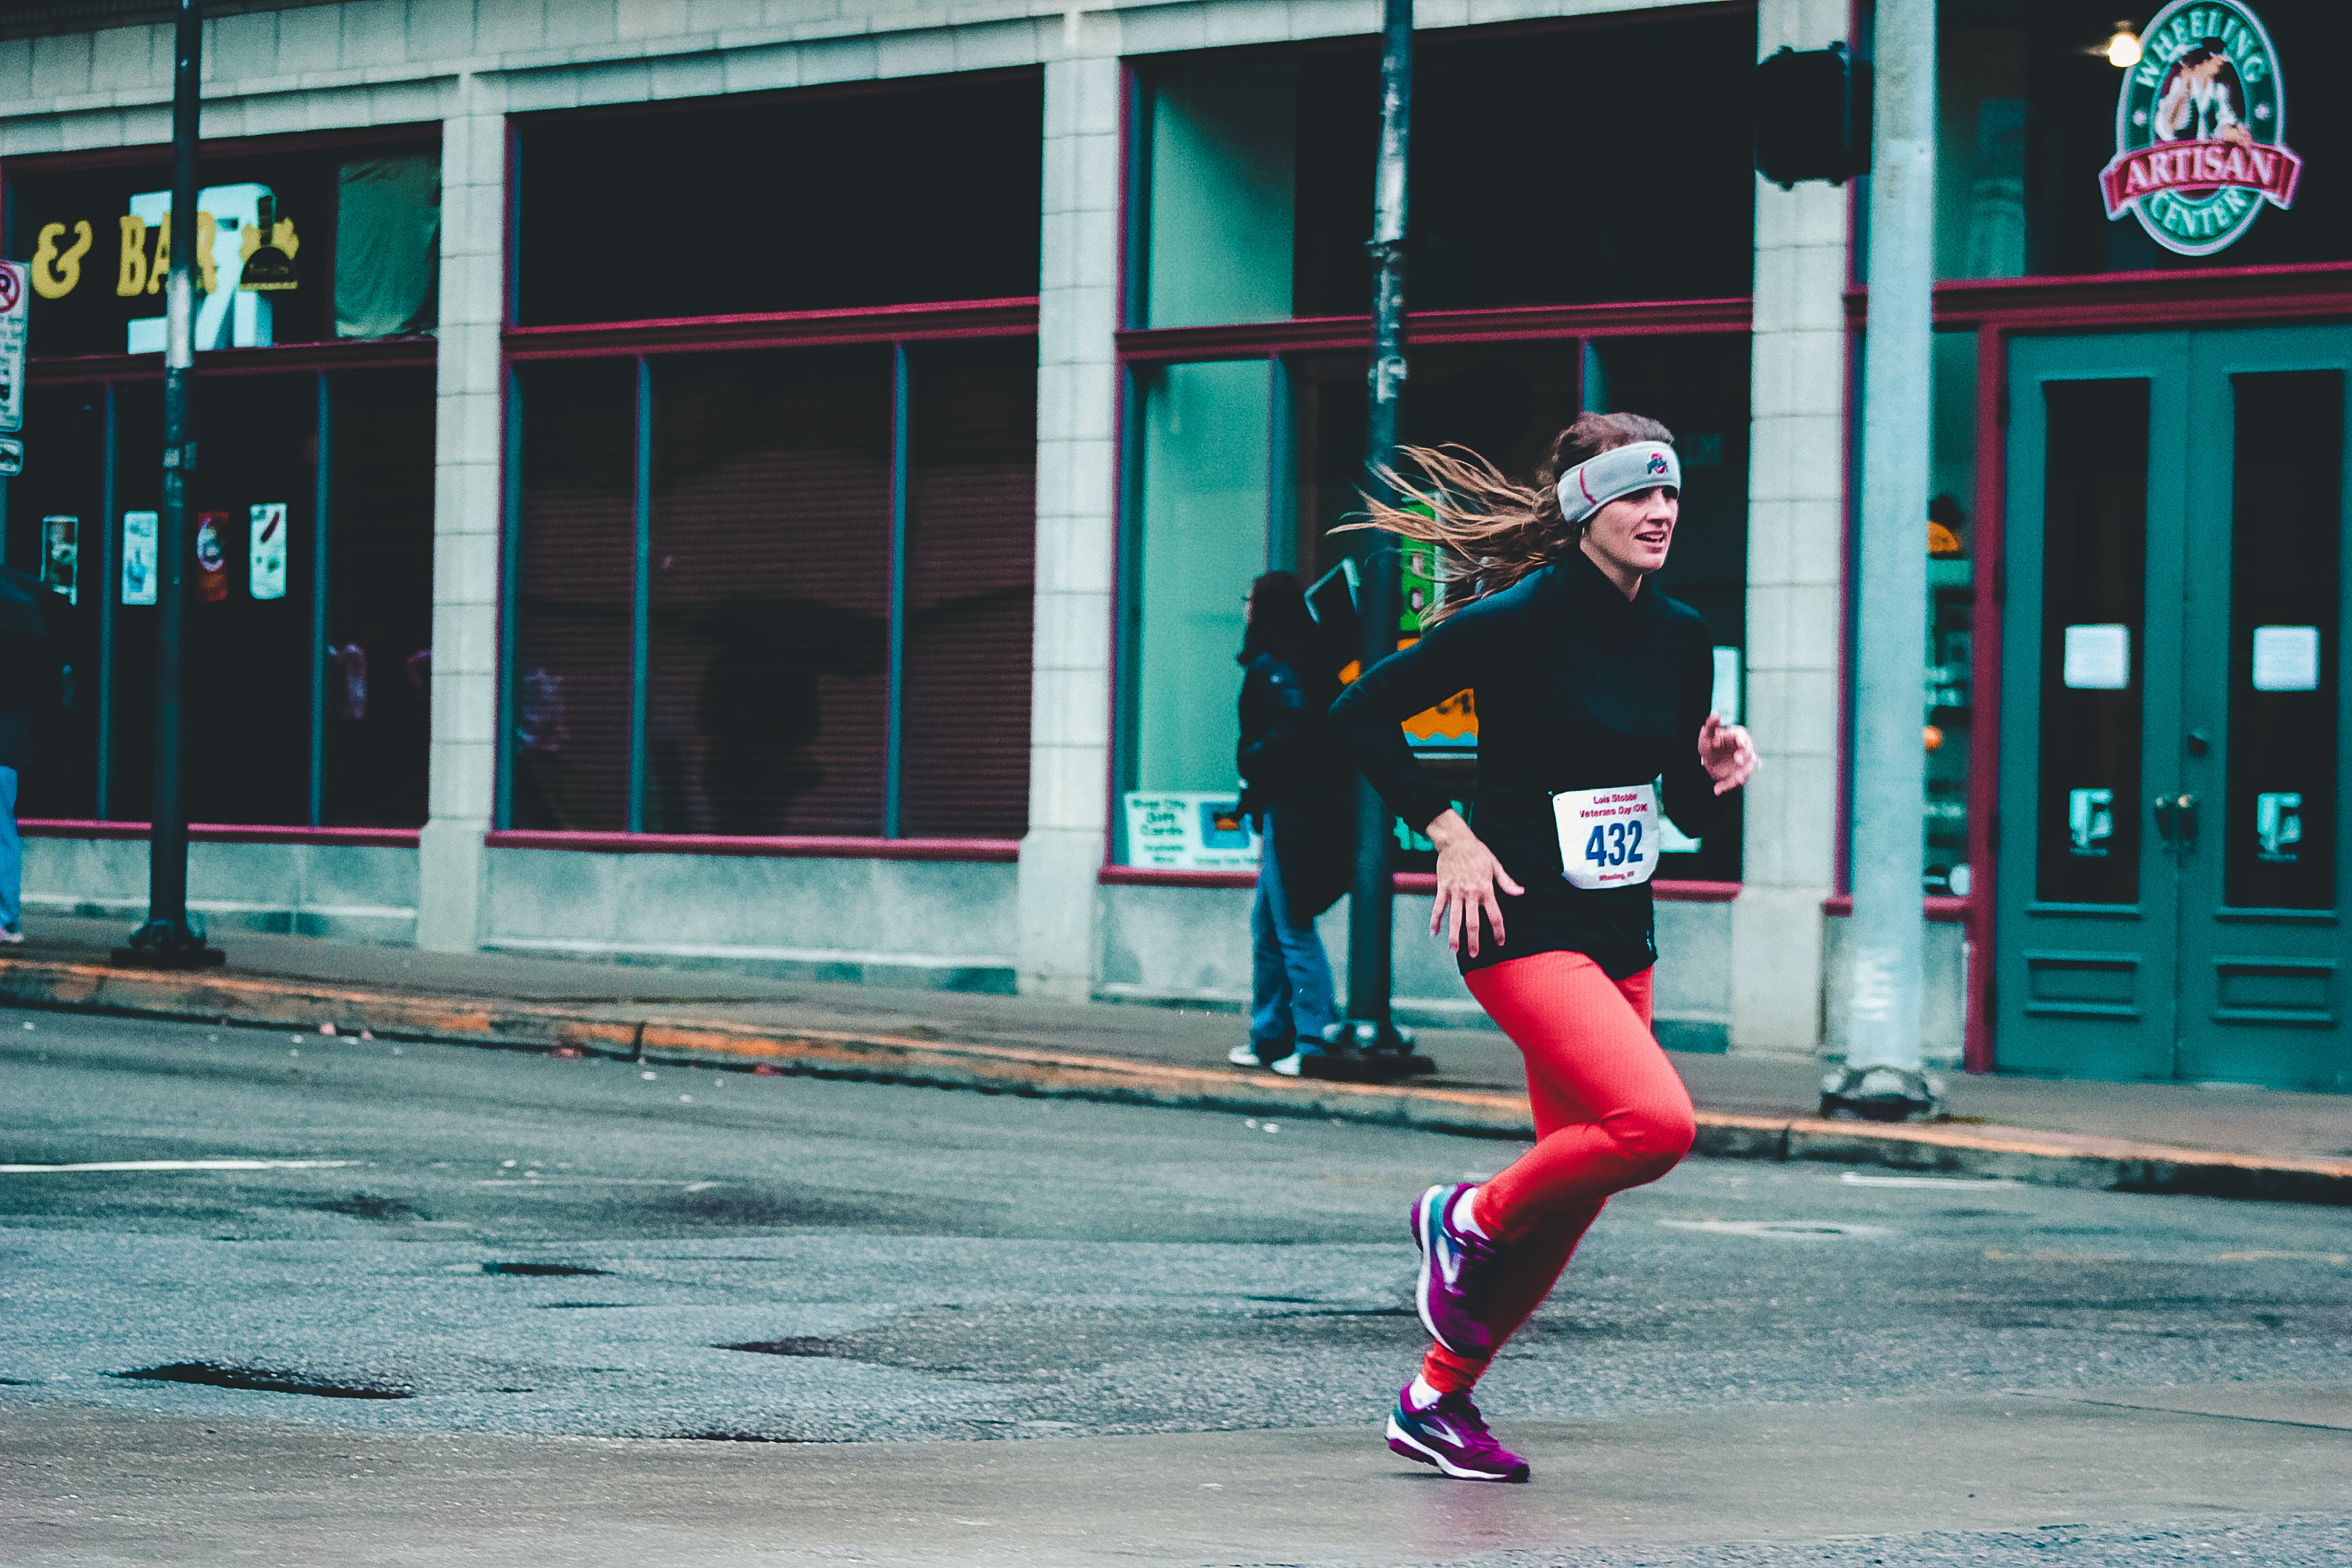 Woman Wearing Red Pants and Black Long-sleeved Top Running